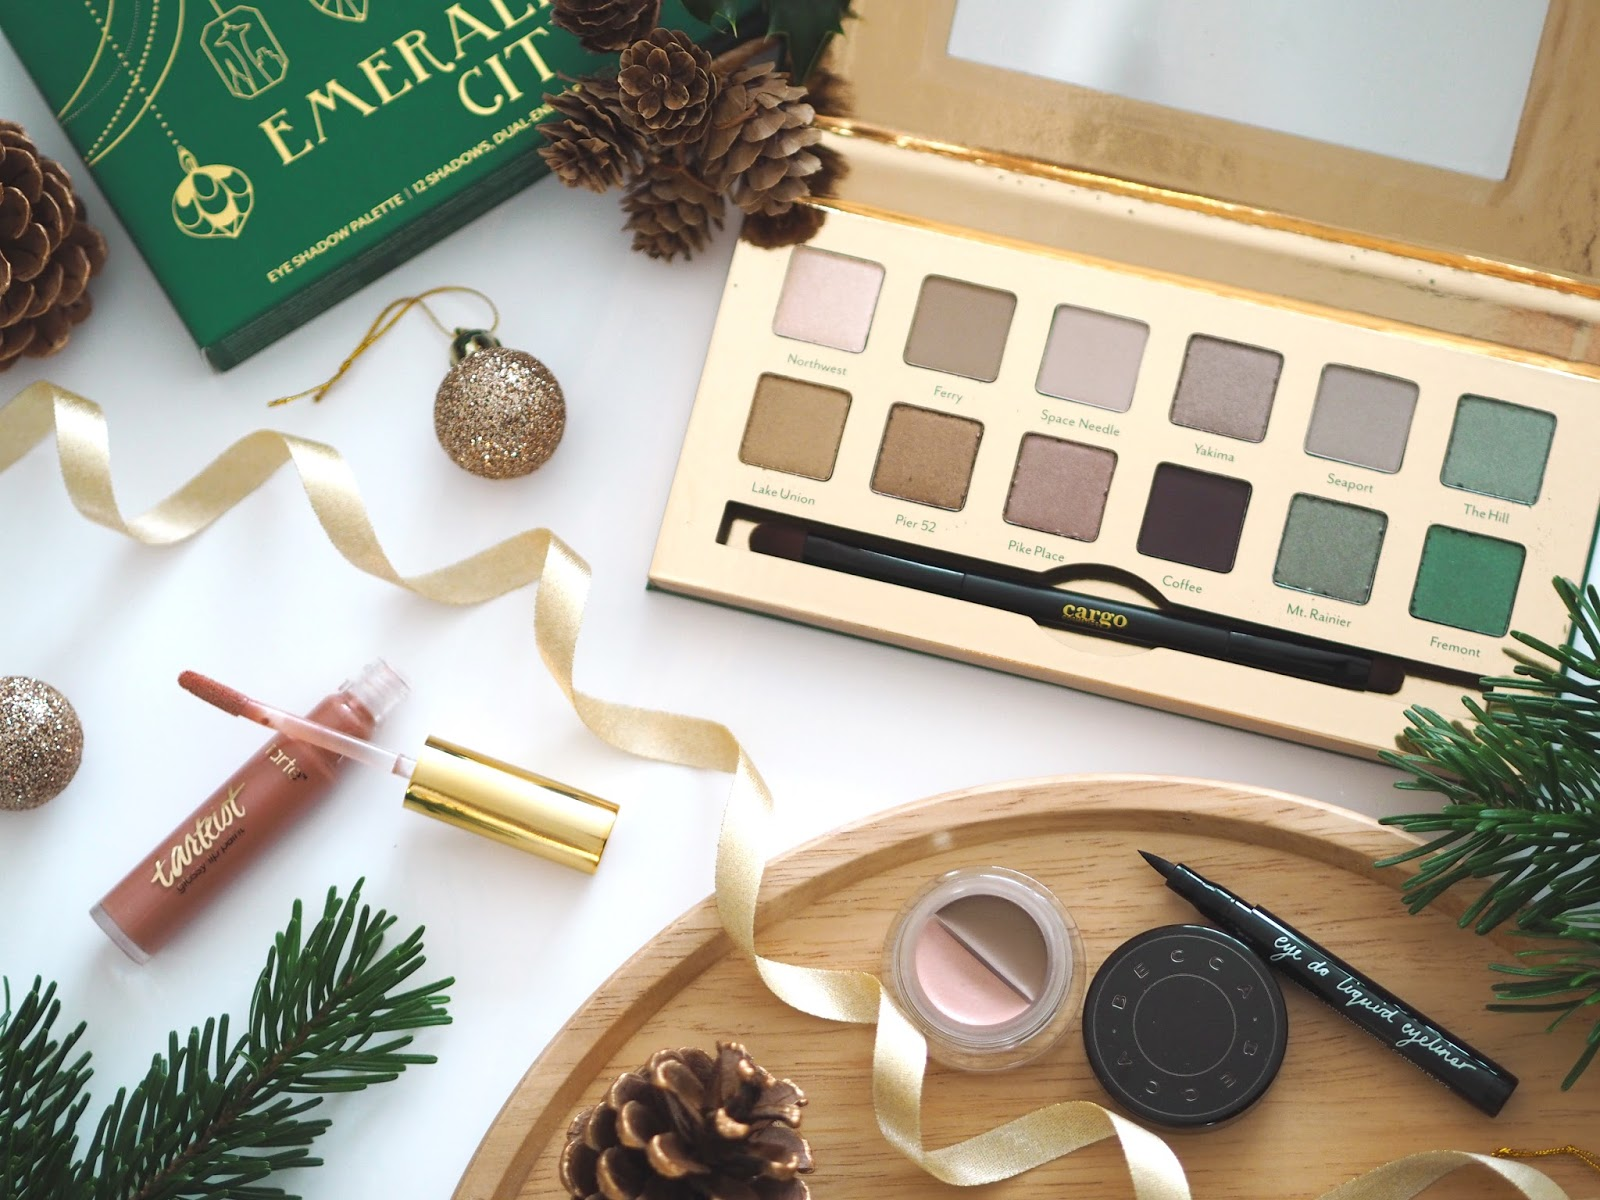 Cohorted Beauty Box: December Edition, Christmas Beauty Box, December Cohorted, Katie Kirk Loves, UK Blogger, UK Beauty Blogger, Sussex Blogger, Beauty Influencer, Beauty Box UK, Beauty Box Review